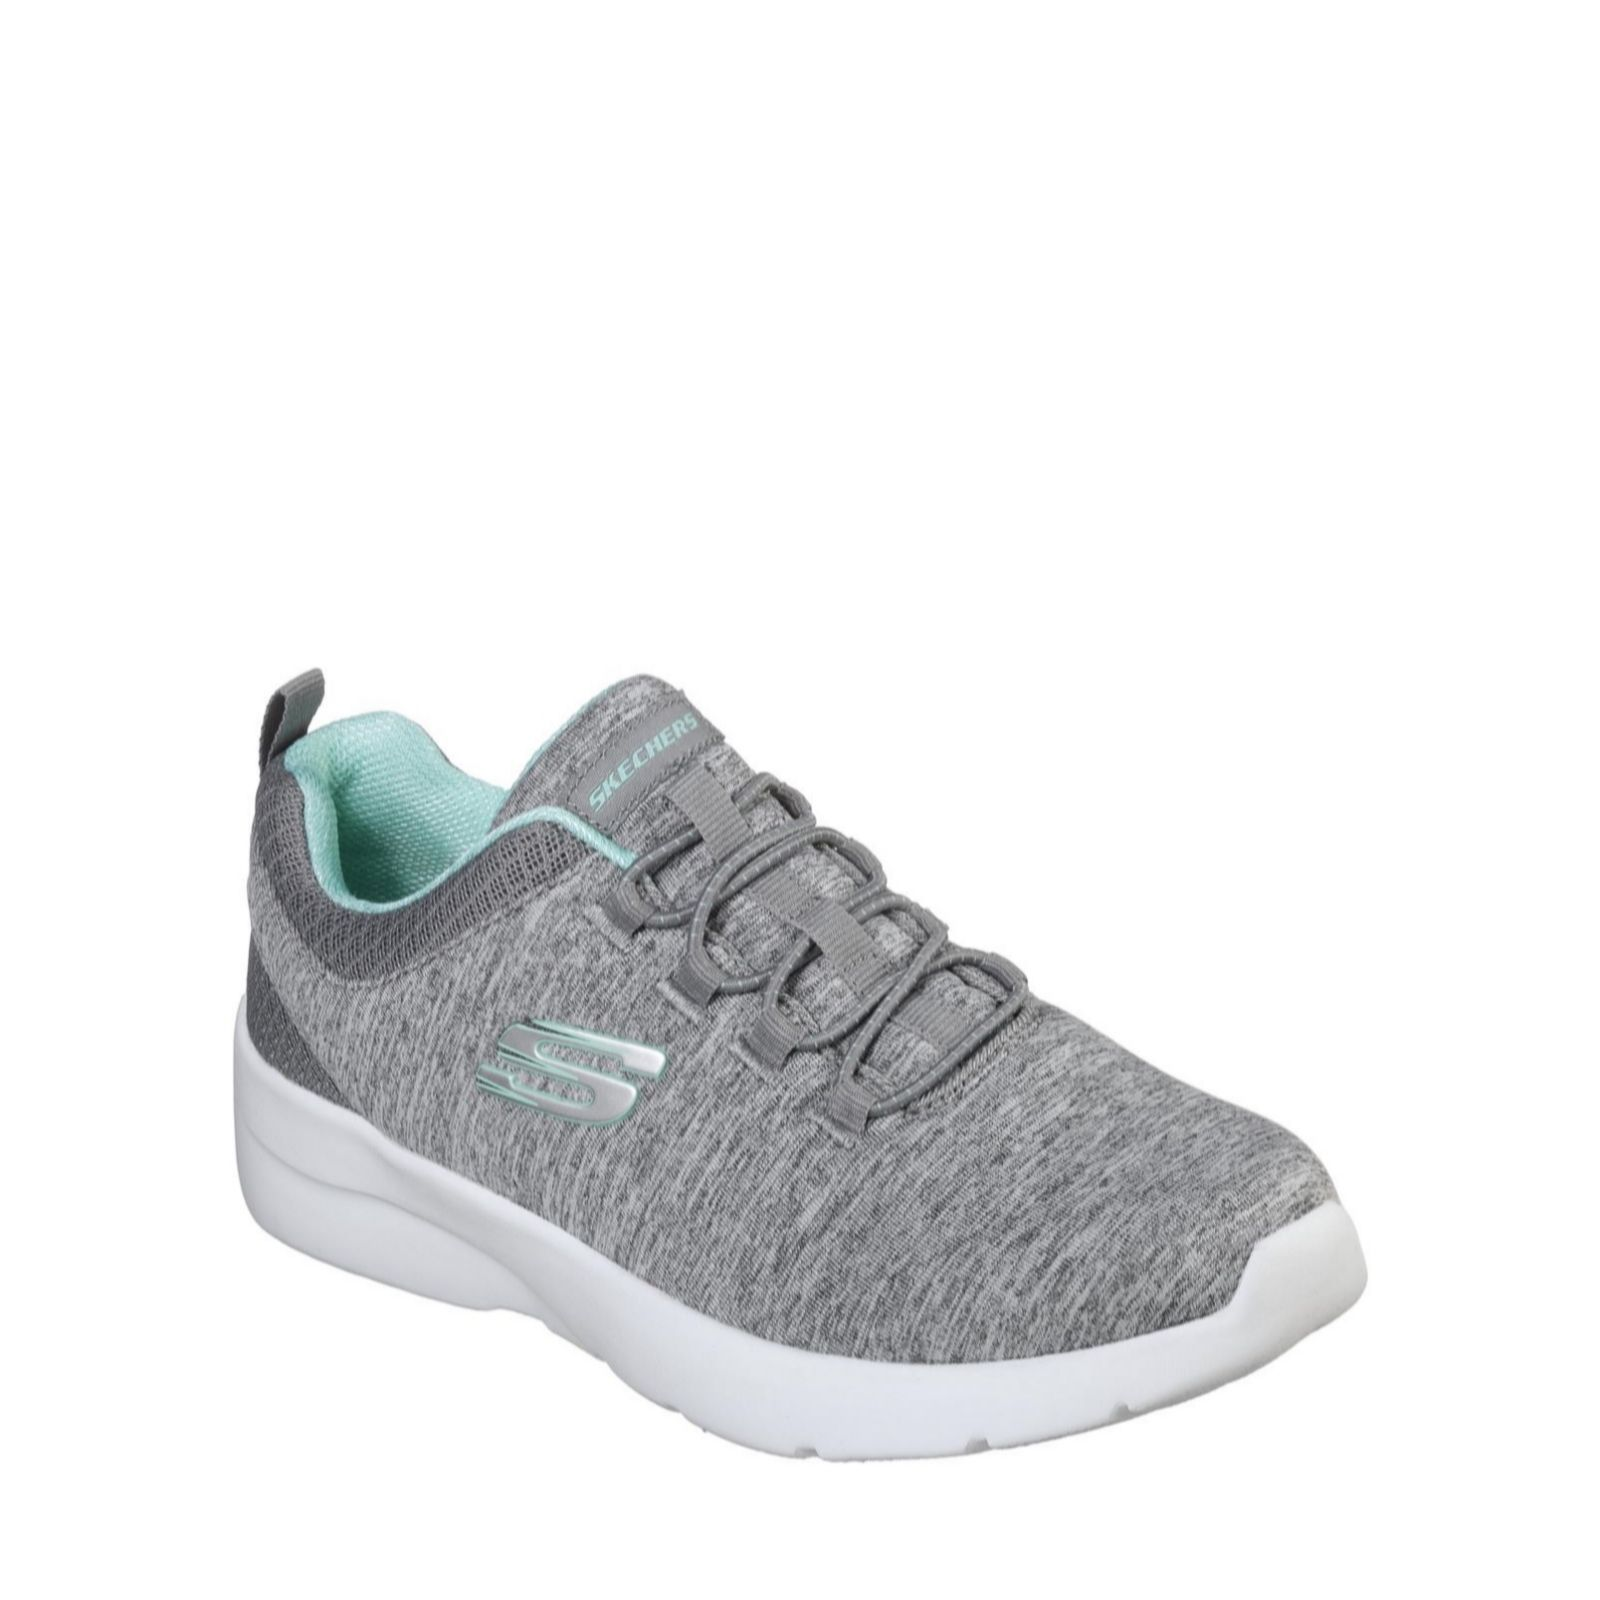 78f7a2877396 Skechers Dynamite Bungee Mesh Slip On Trainer - QVC UK